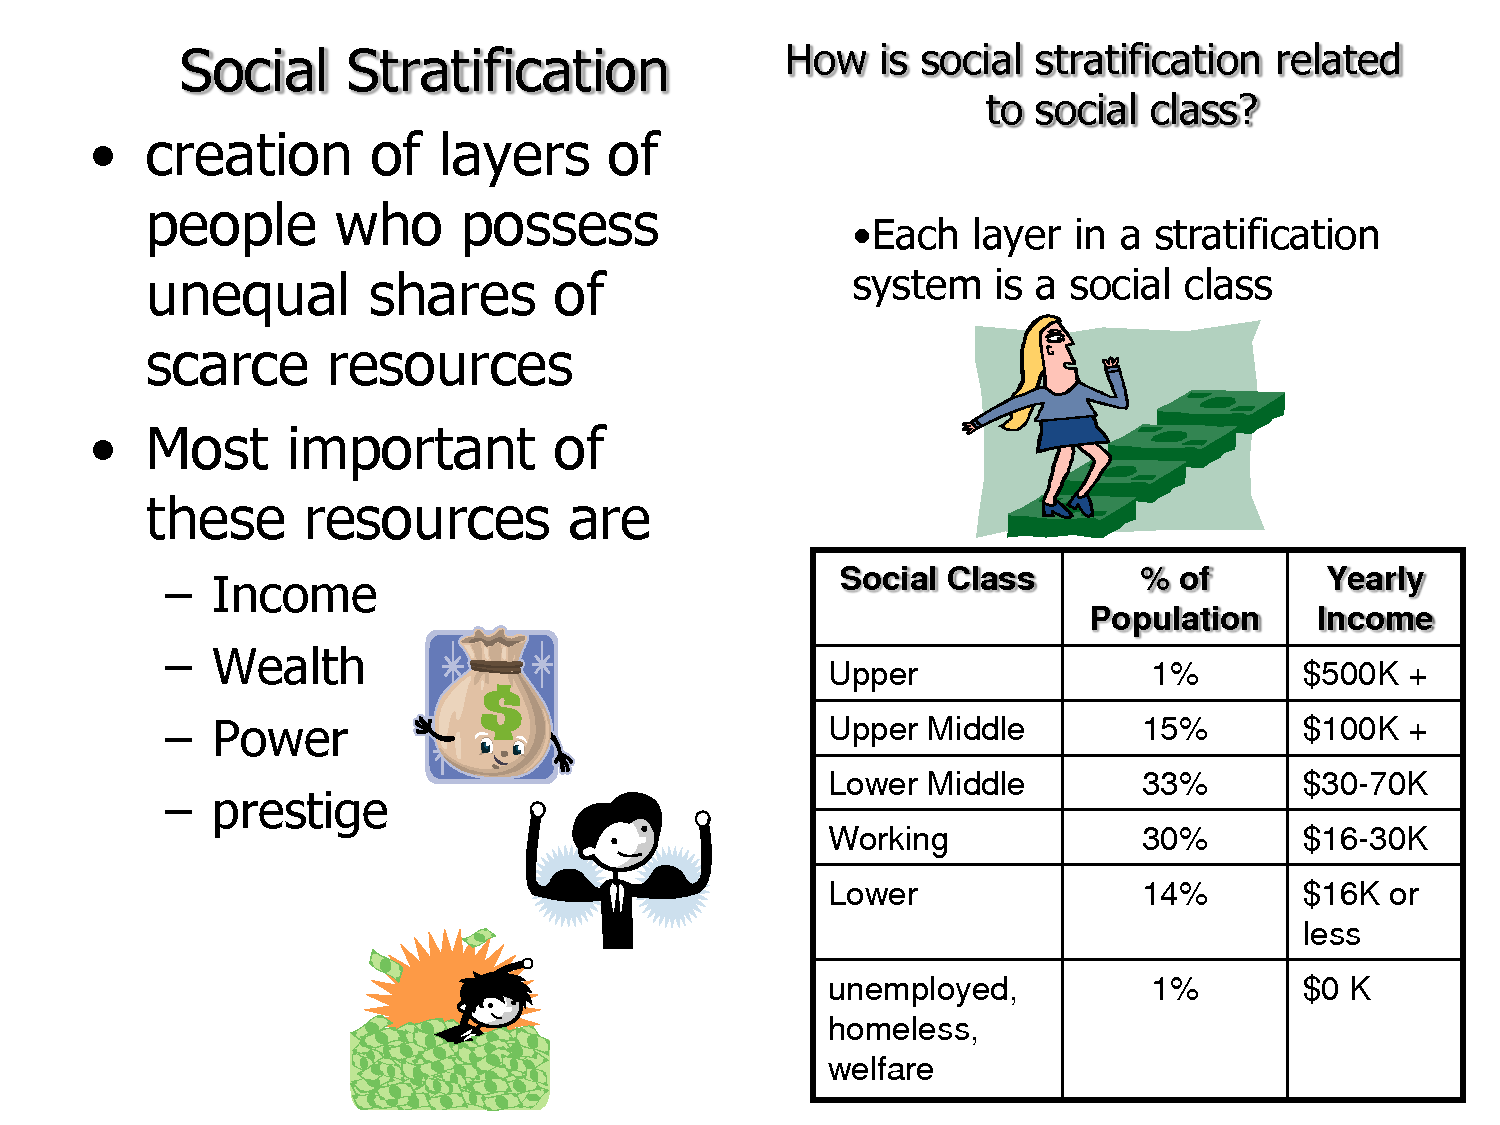 social startification The three-component theory of stratification, more widely known as weberian stratification or the three class system, was developed by german sociologist max weber with class, status and power as distinct ideal types weber developed a multidimensional approach to social stratification that reflects the interplay among wealth, prestige and power weber argued that power can take a variety of.